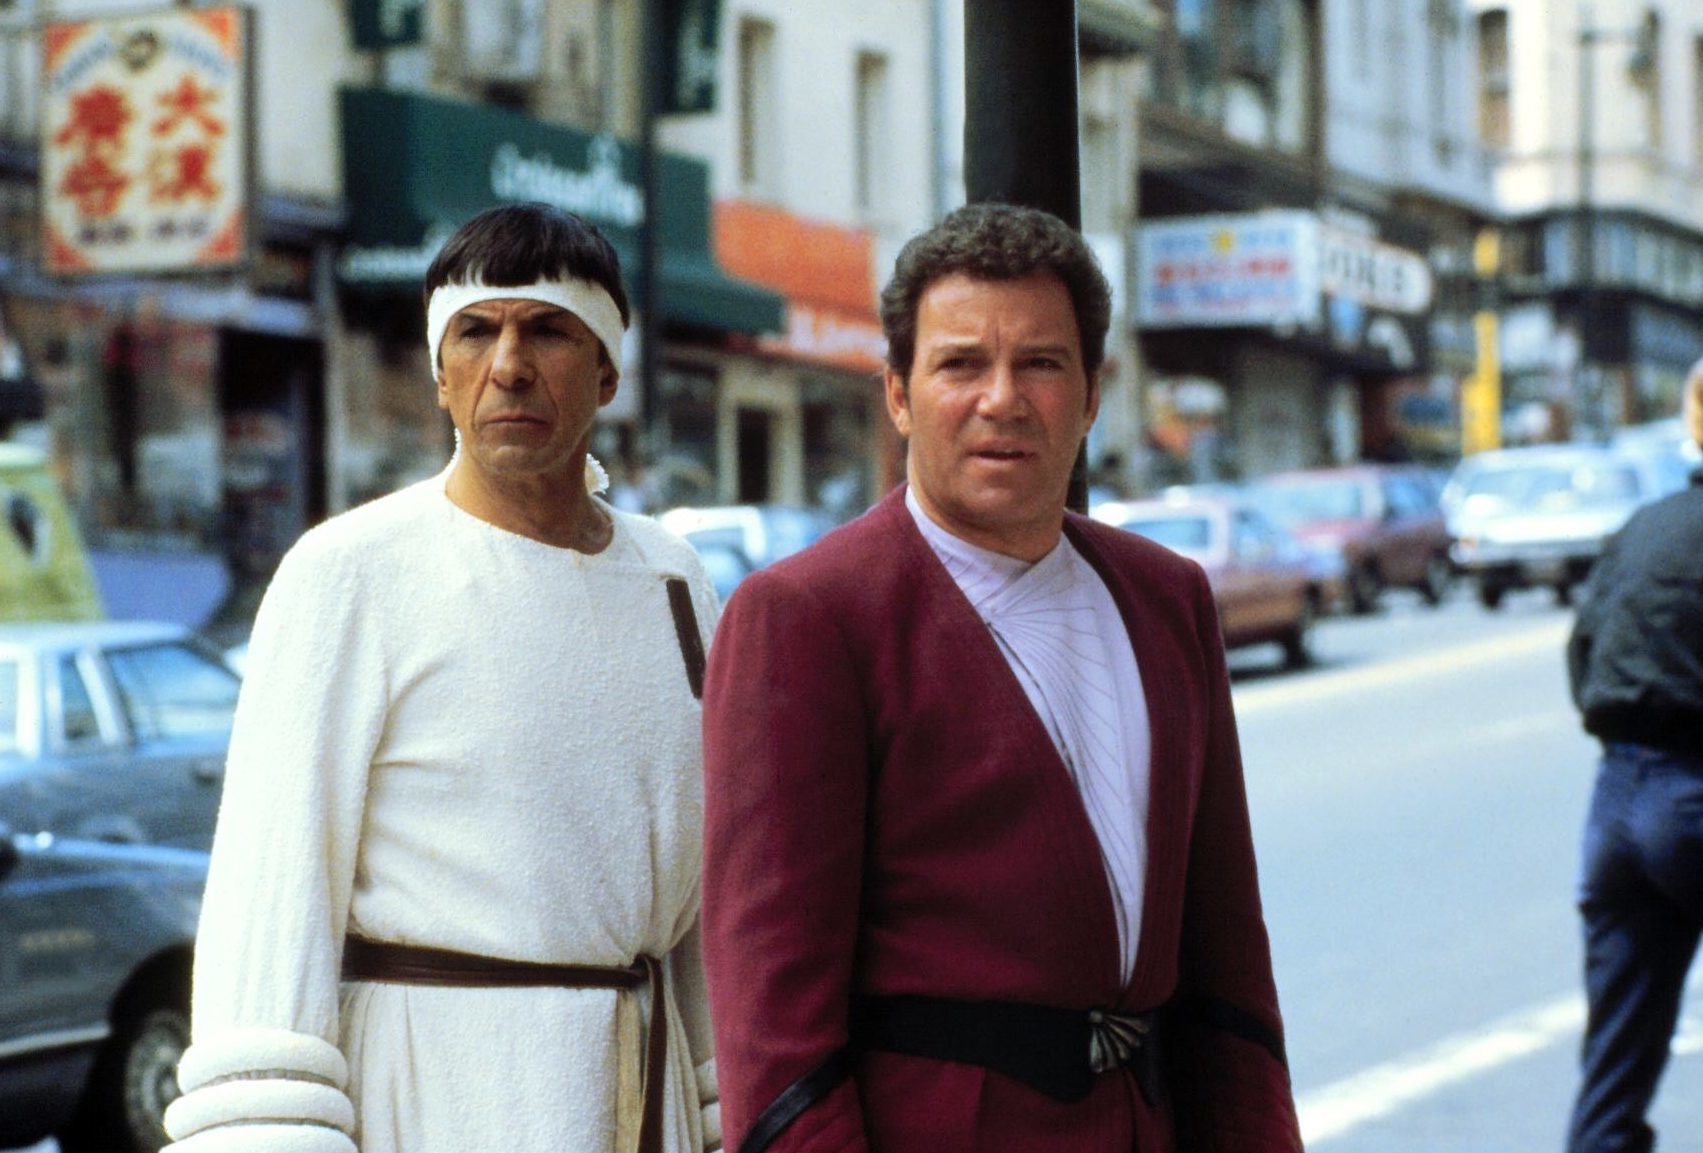 Leonard Nimoy and William Shatner as iconic duo Spock and Kirk in Star Trek IV: The Voyage Home.